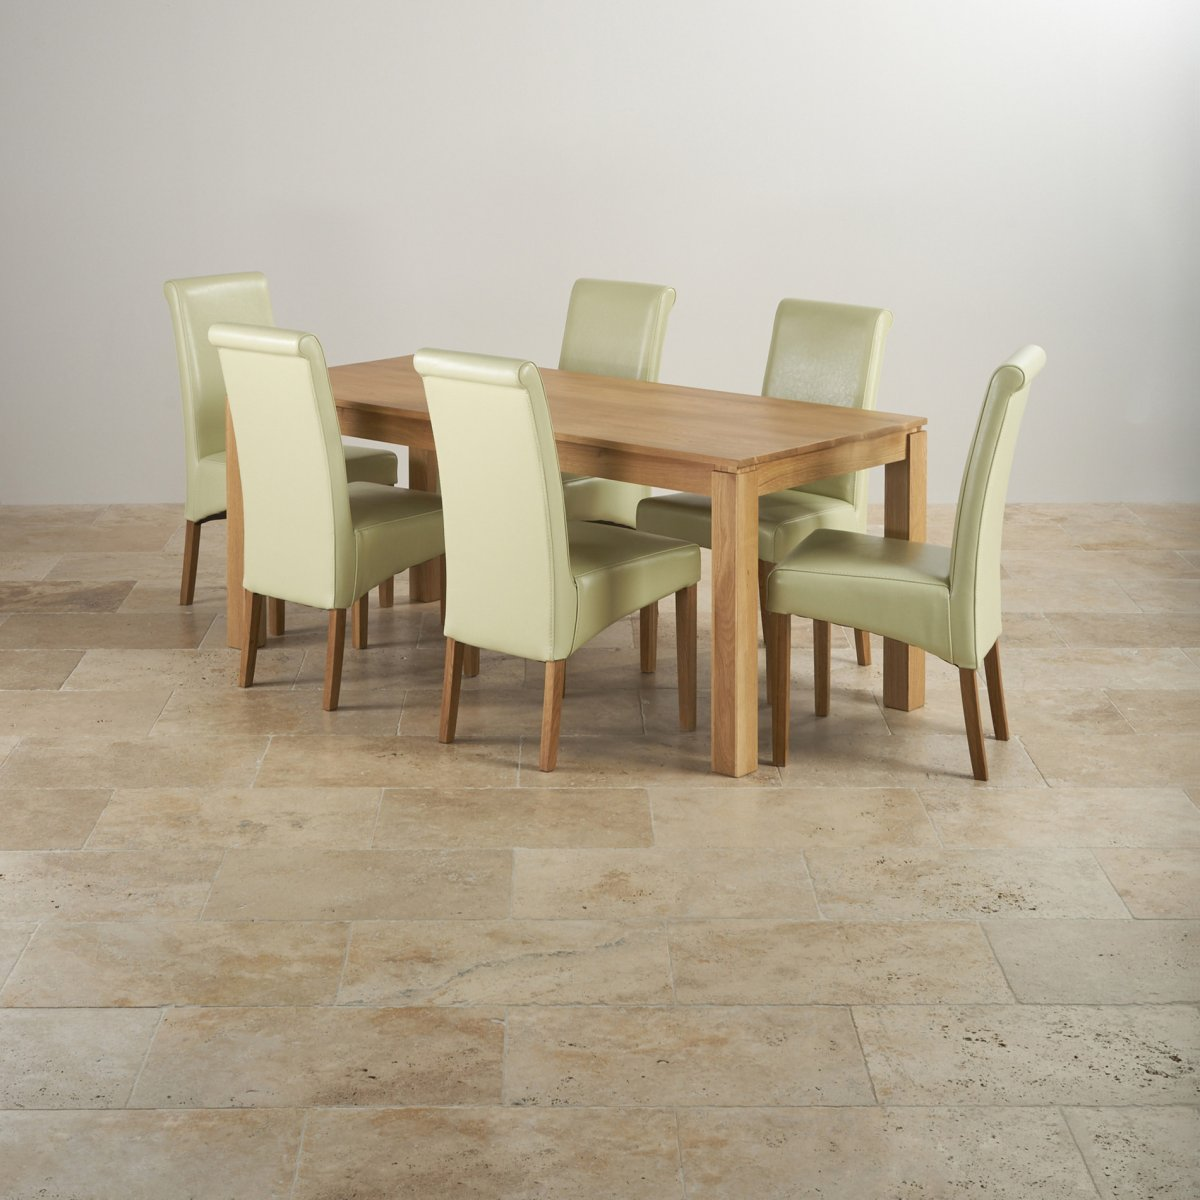 Provence Natural Solid Oak Dining Set: 6ft Table + 6 Cream Leather Chairs